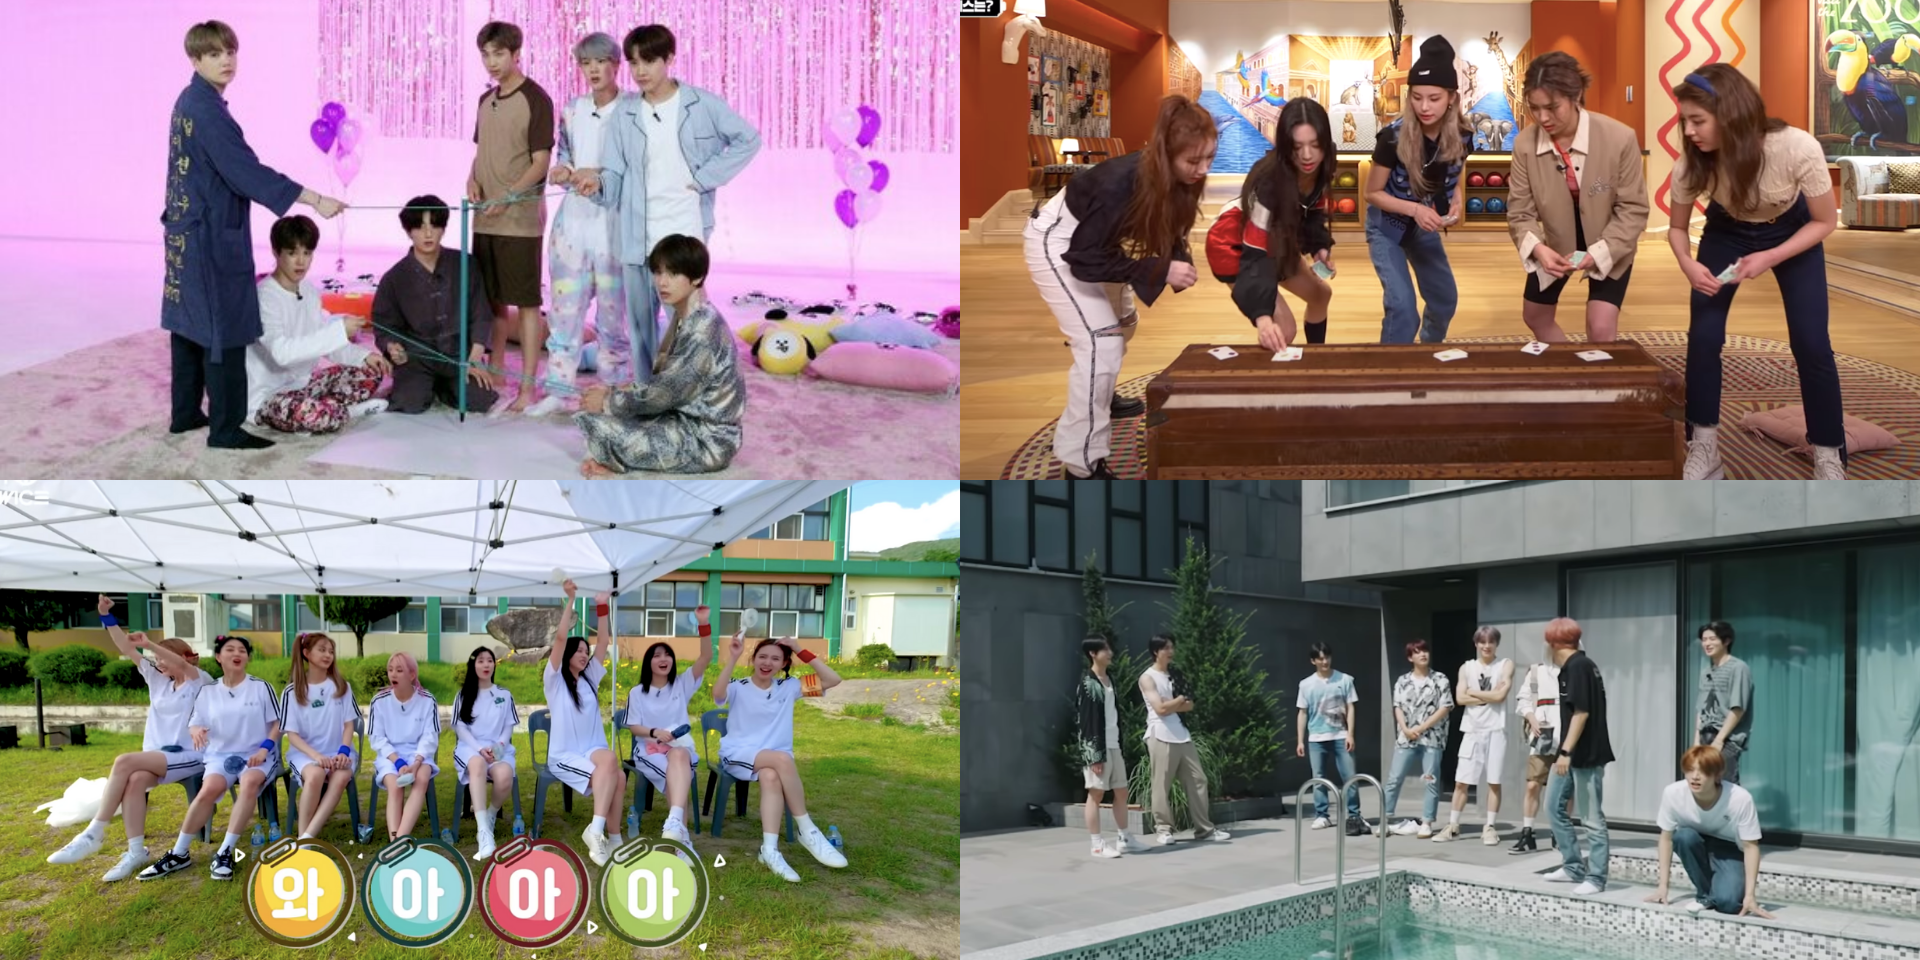 7 Korean idol variety shows you need to watch – Run BTS!, TIME TO TWICE, NCT Life, and more